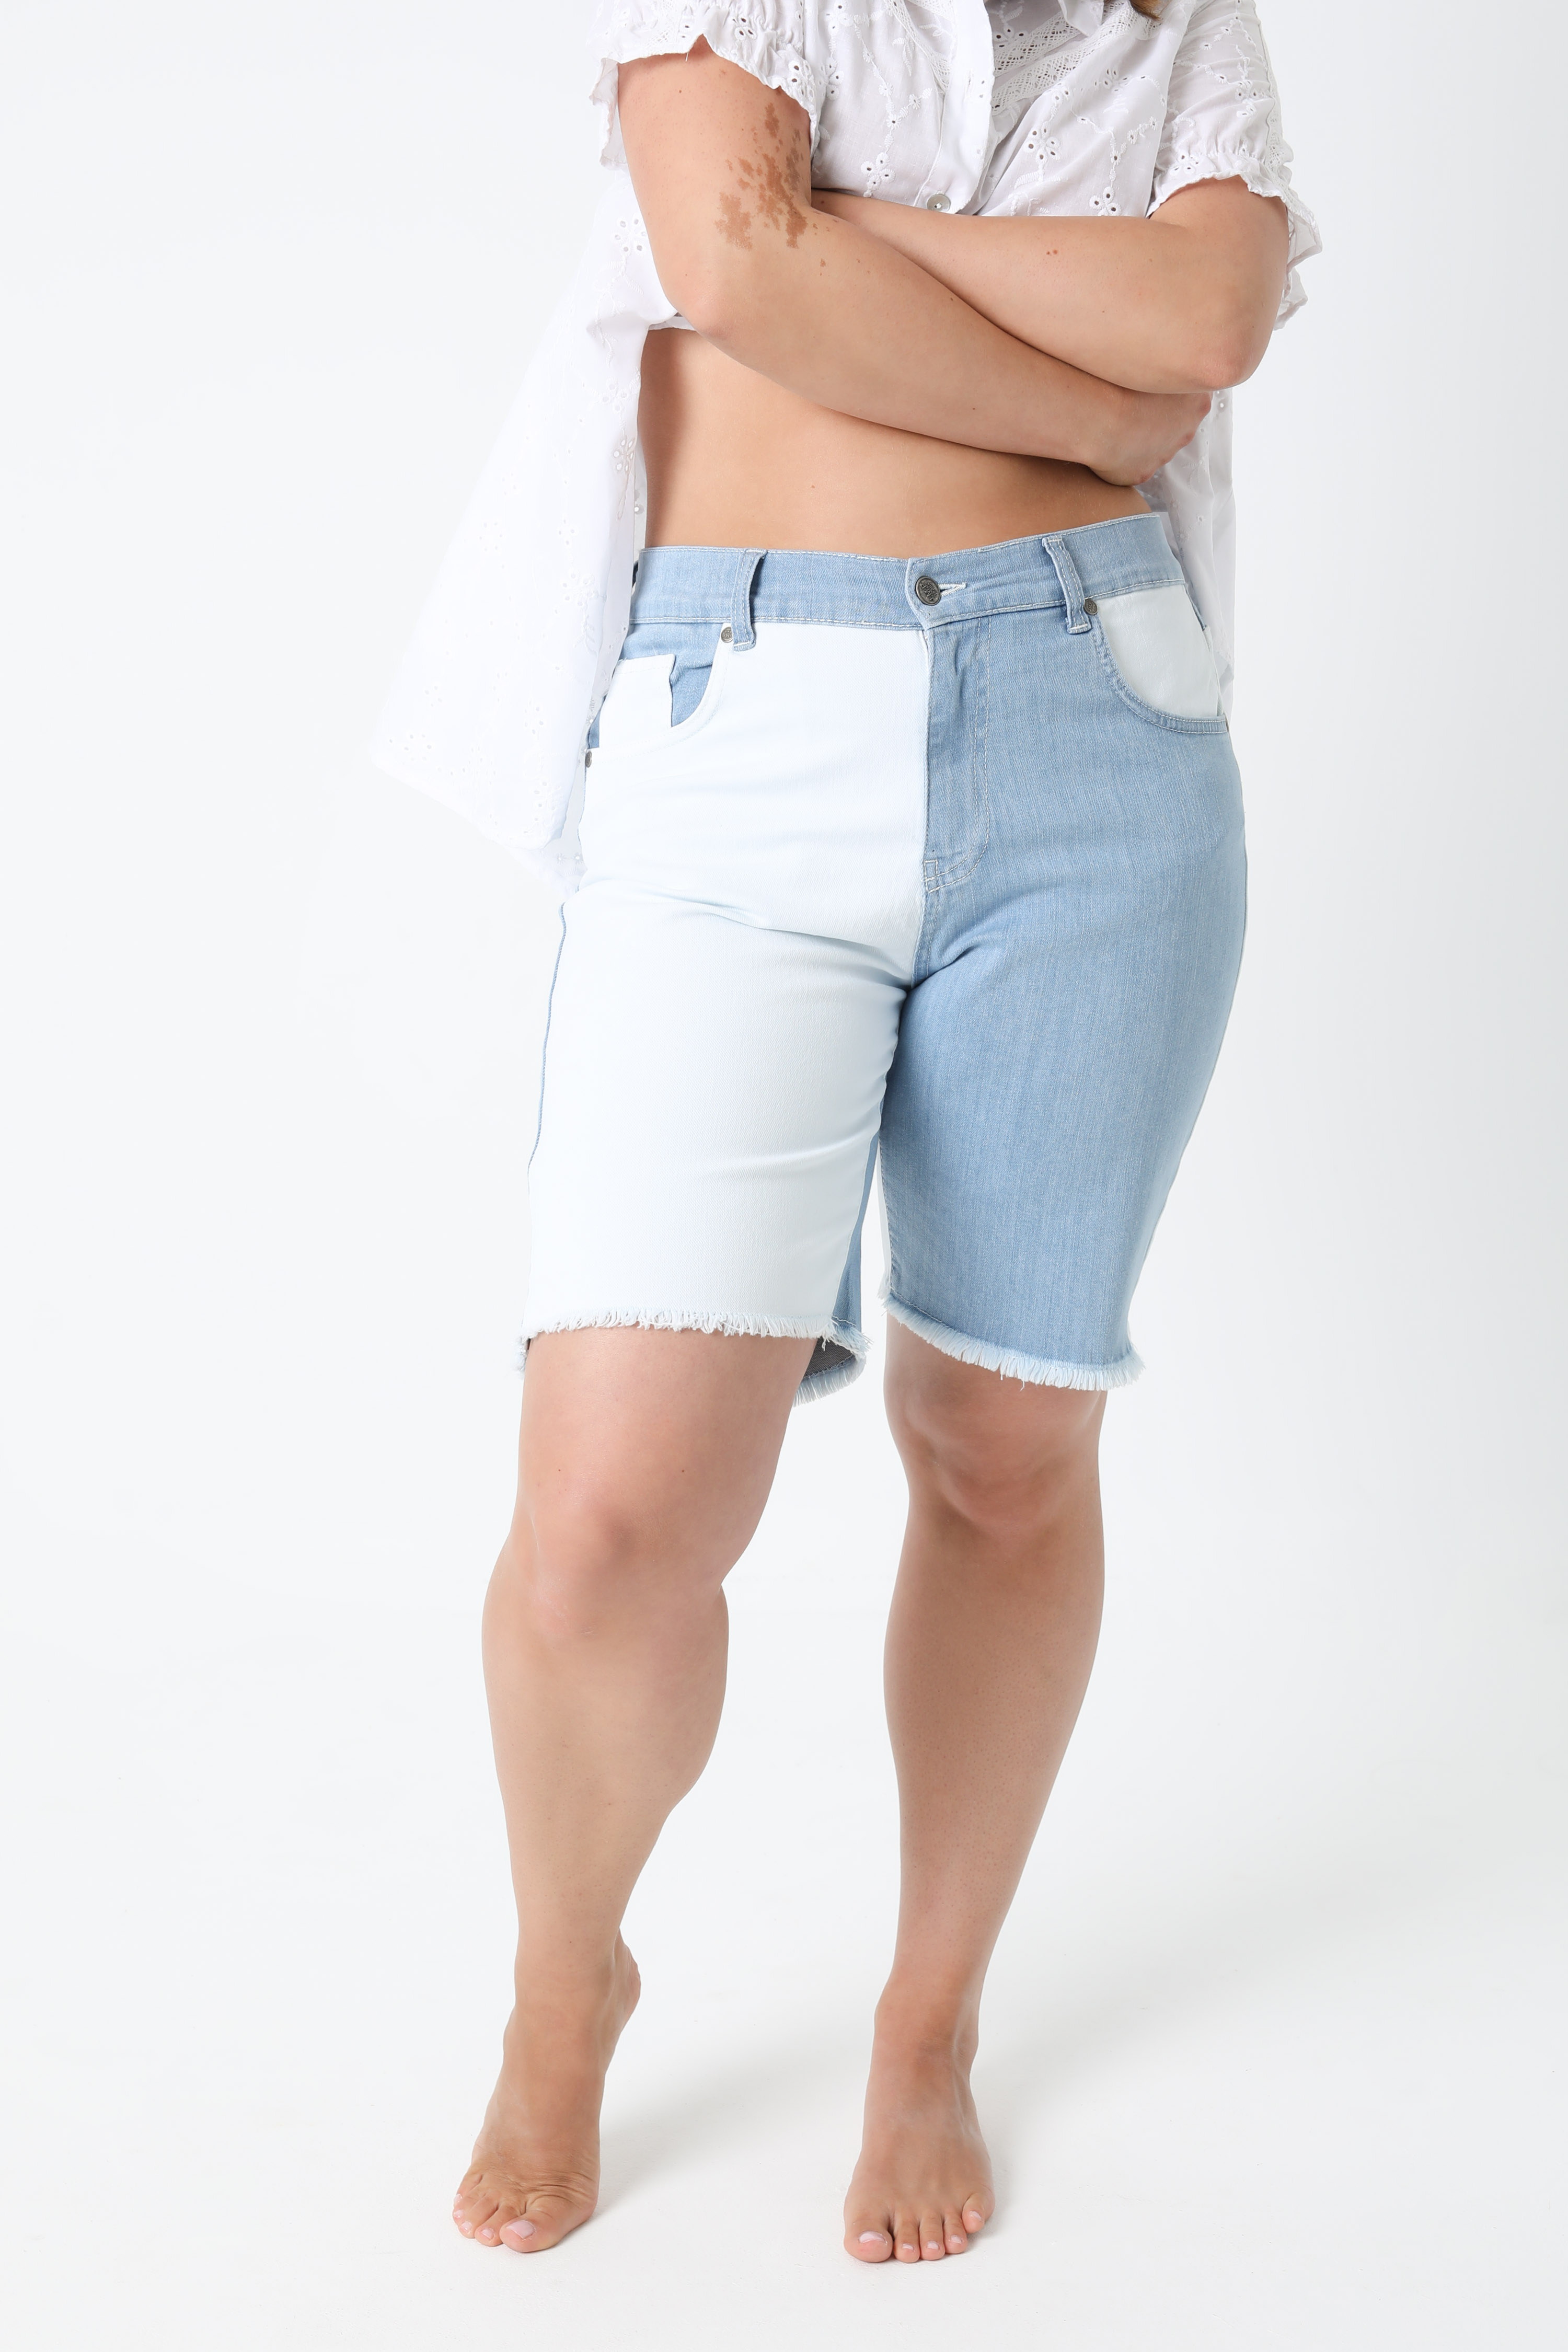 Bermuda shorts in two-tone jeans